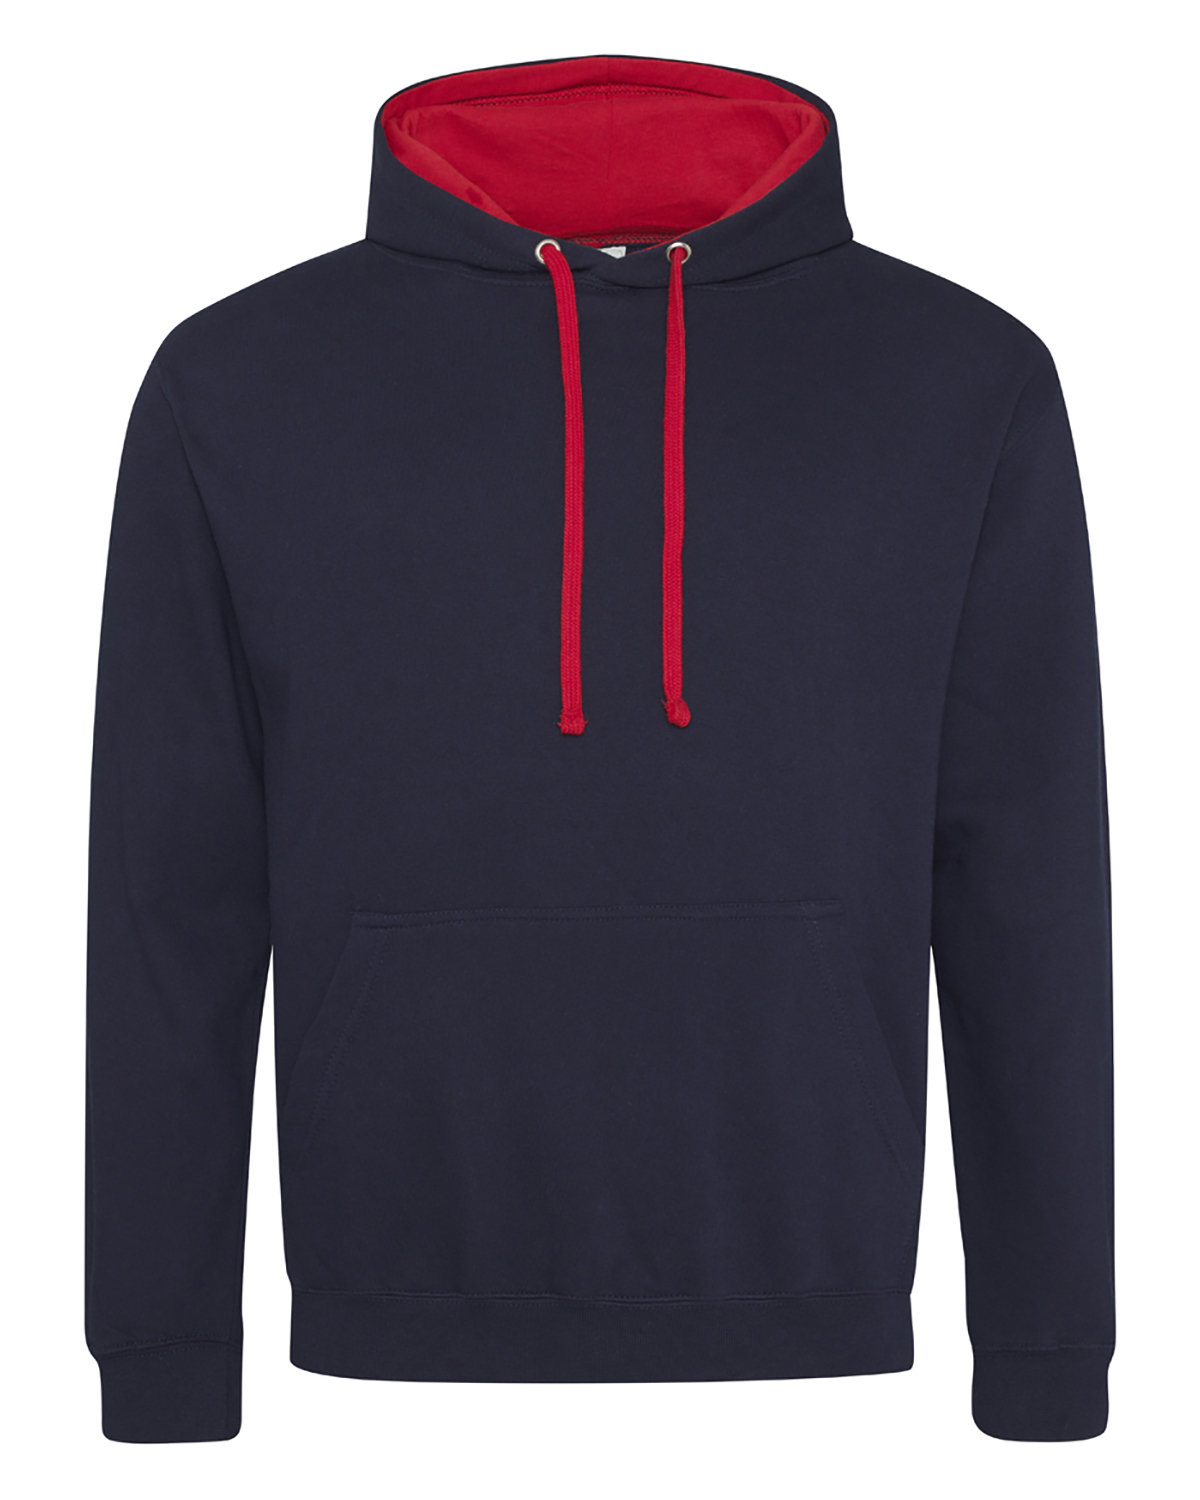 Just Hoods By AWDis Adult 80/20 Midweight Varsity Contrast Hooded Sweatshirt FRNCH NVY/ FR RD